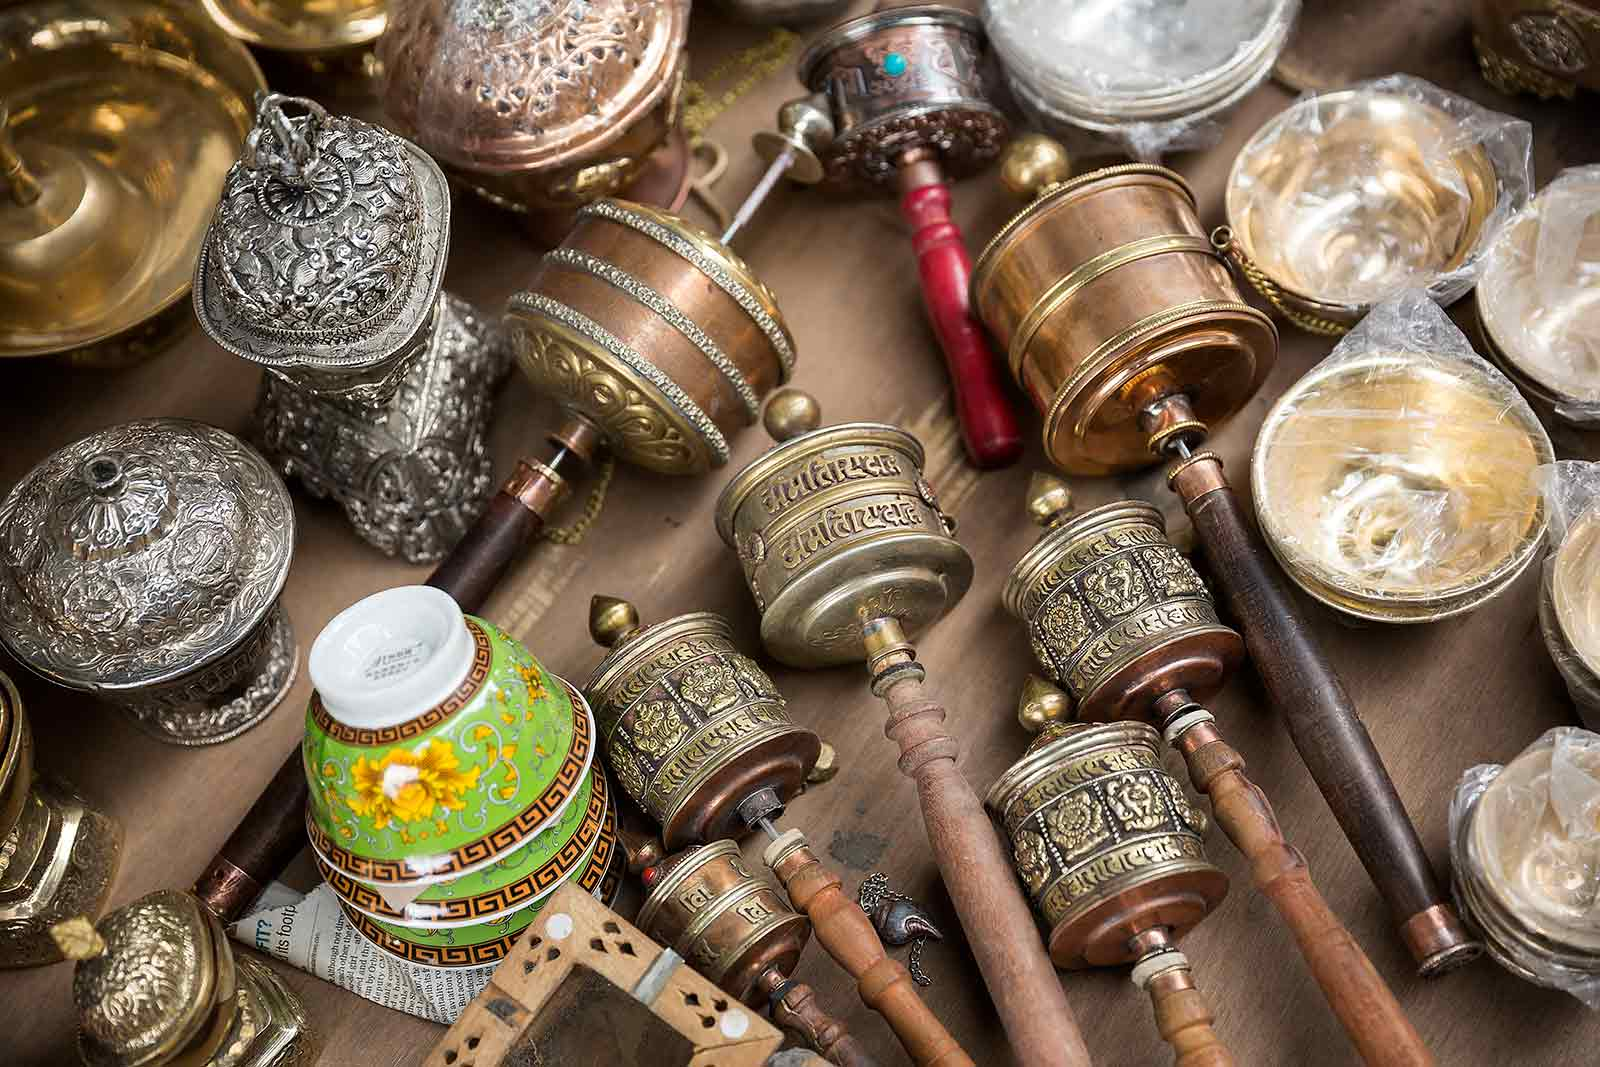 Tibetan handicraft items including prayer wheels, Buddhist masks and paintings can be purchased at the markets in Leh.